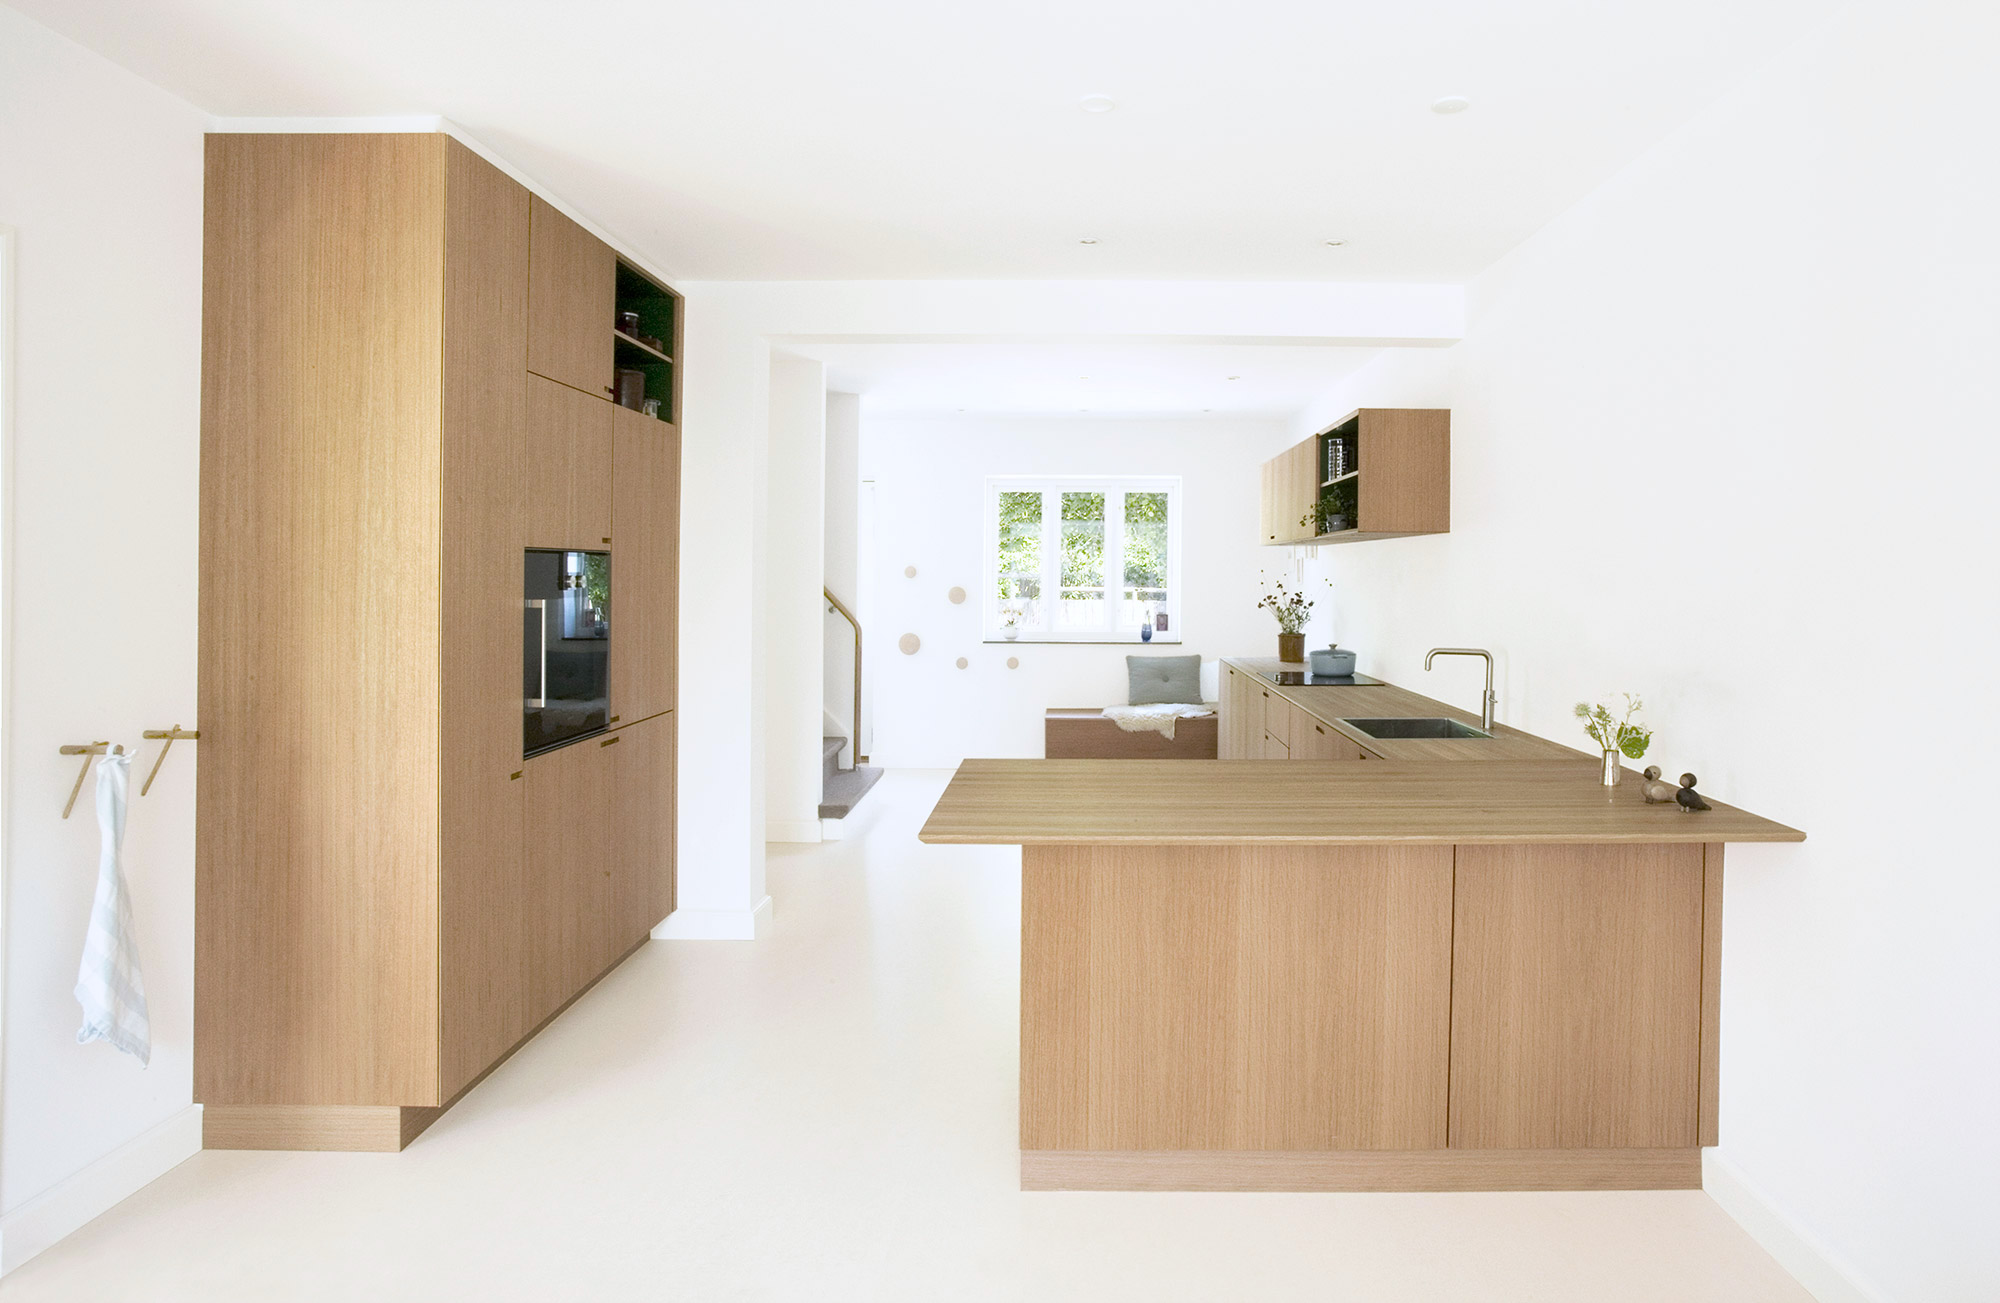 The kitchen at Egernvej - designed and produced by cabinet maker Nicolaj Bo™